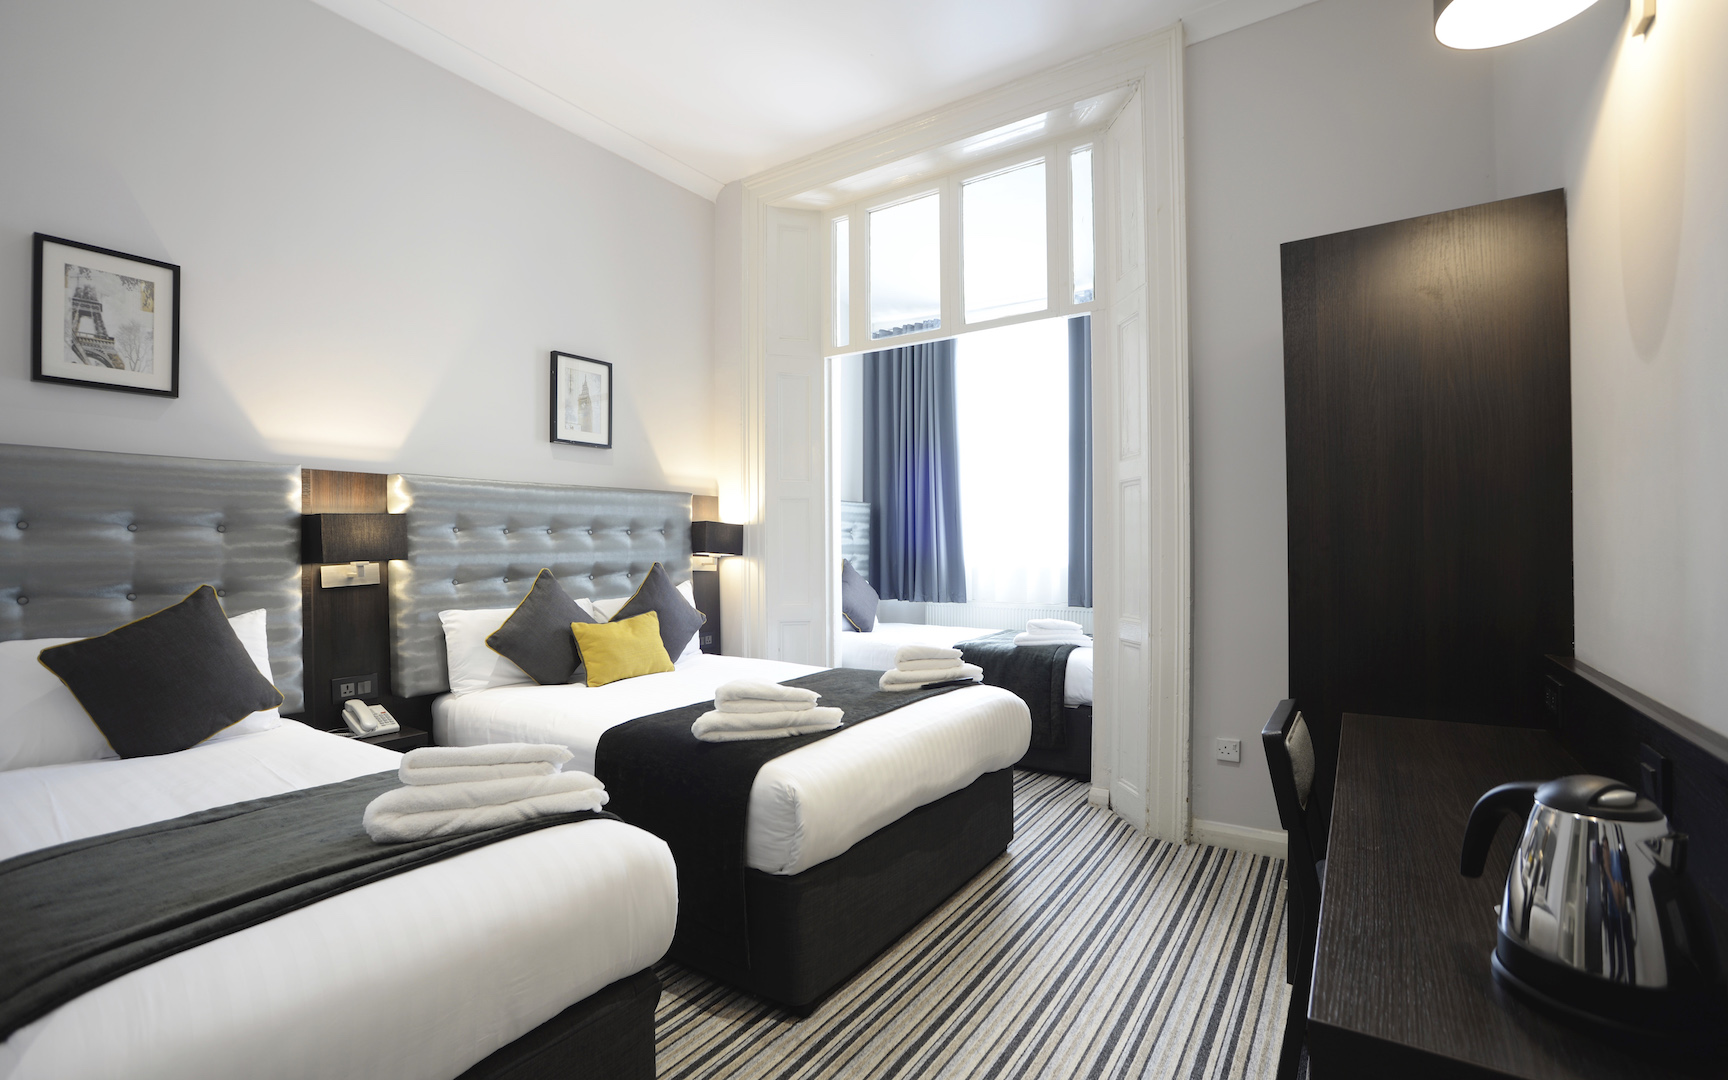 Airways Hotel London Victoria